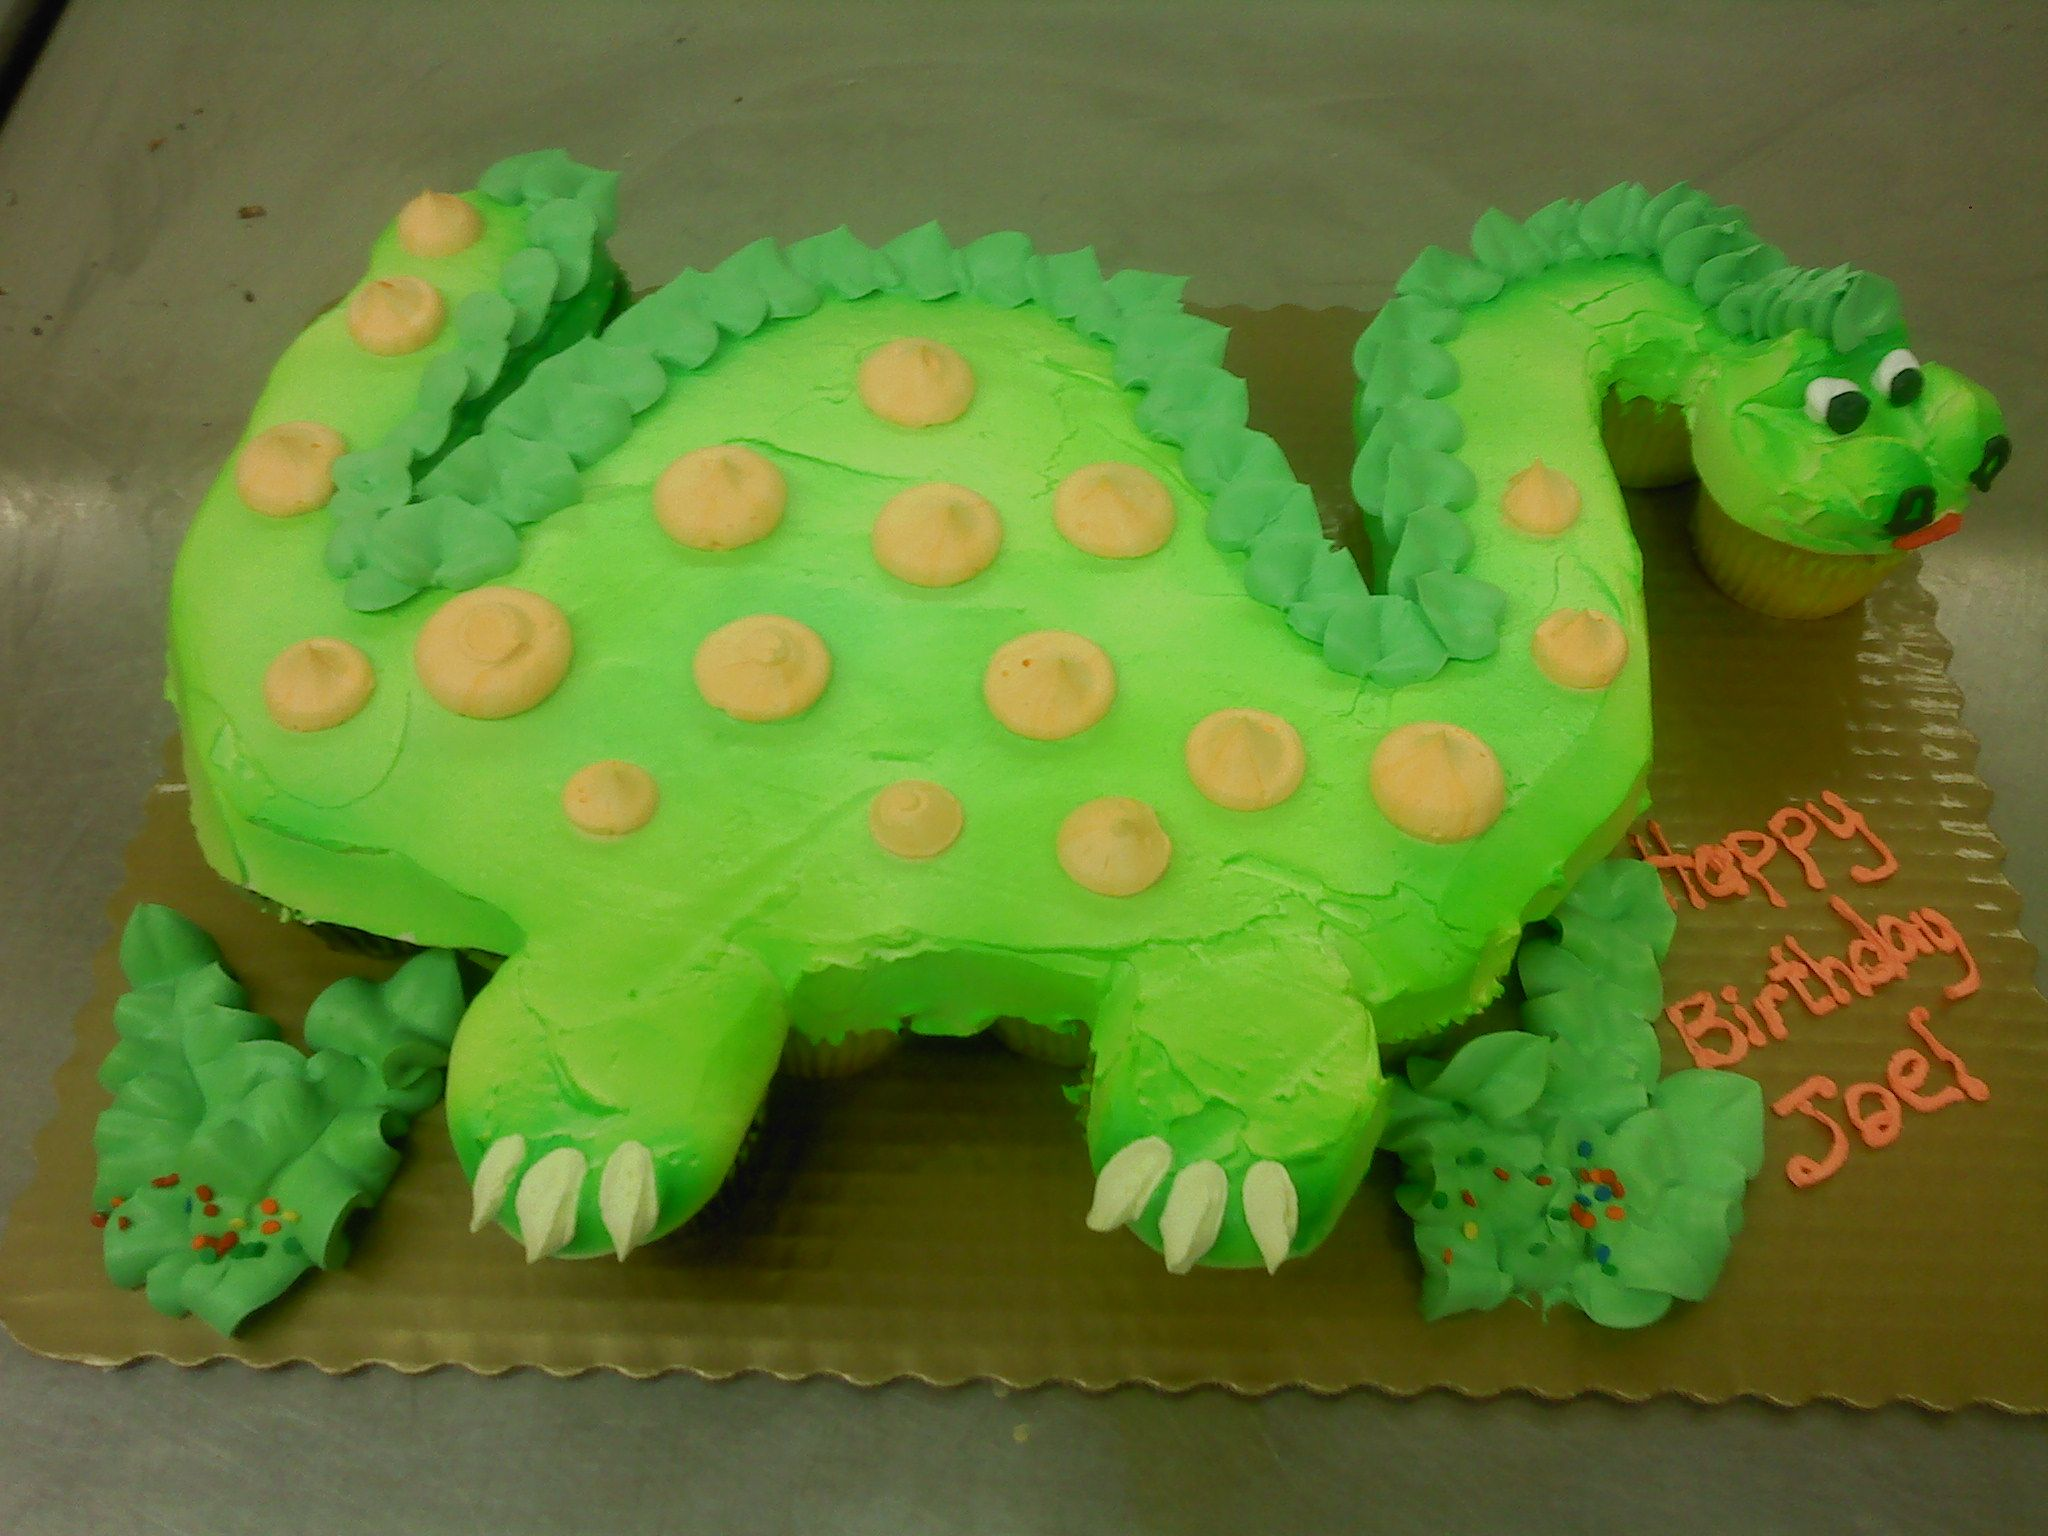 Dinosaur Cupcakes getting ideas for boy birthday cakes birthdays